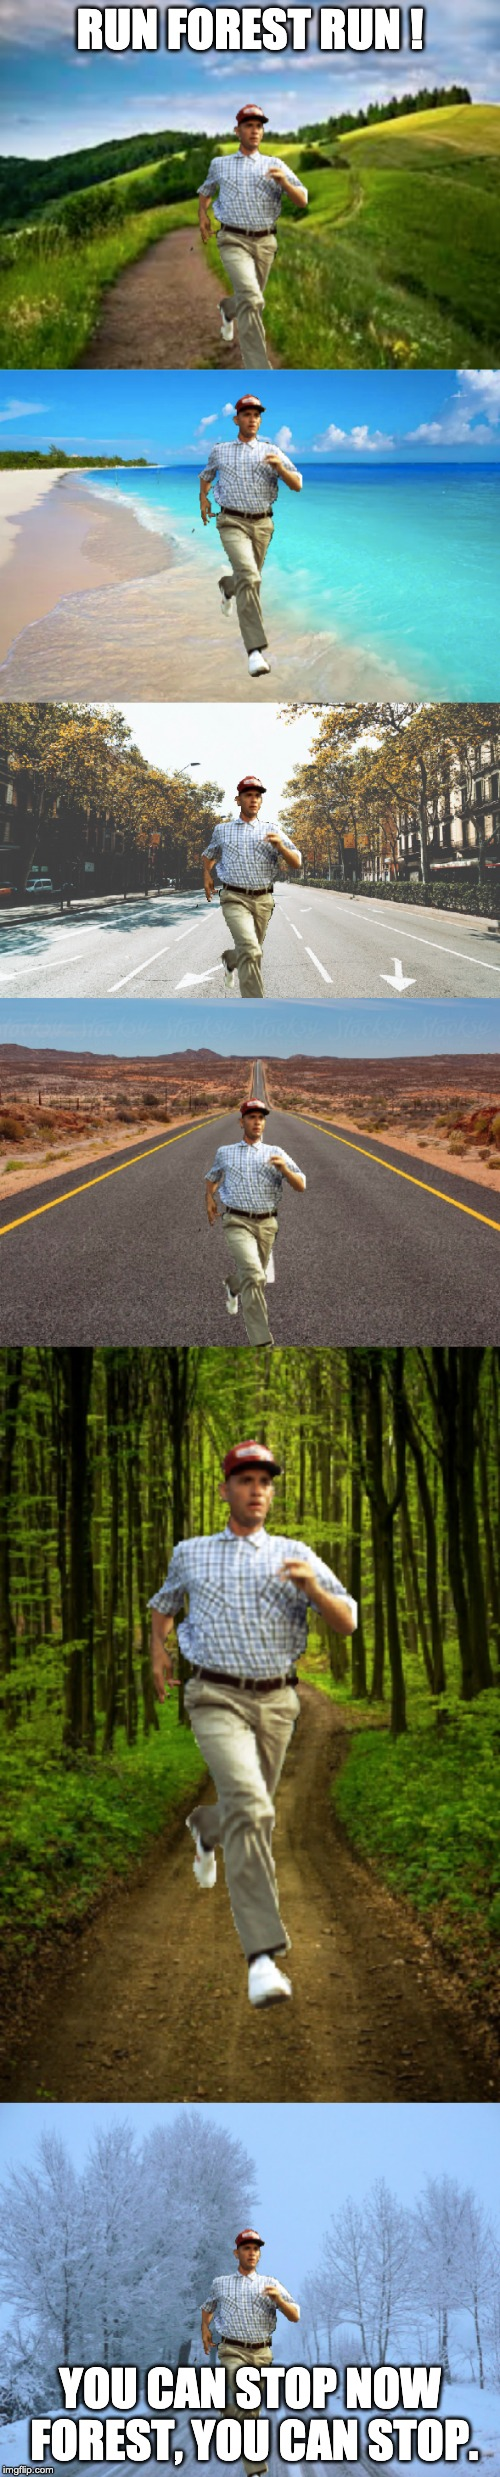 run forest run | RUN FOREST RUN ! YOU CAN STOP NOW FOREST, YOU CAN STOP. | image tagged in run forrest run,fun | made w/ Imgflip meme maker